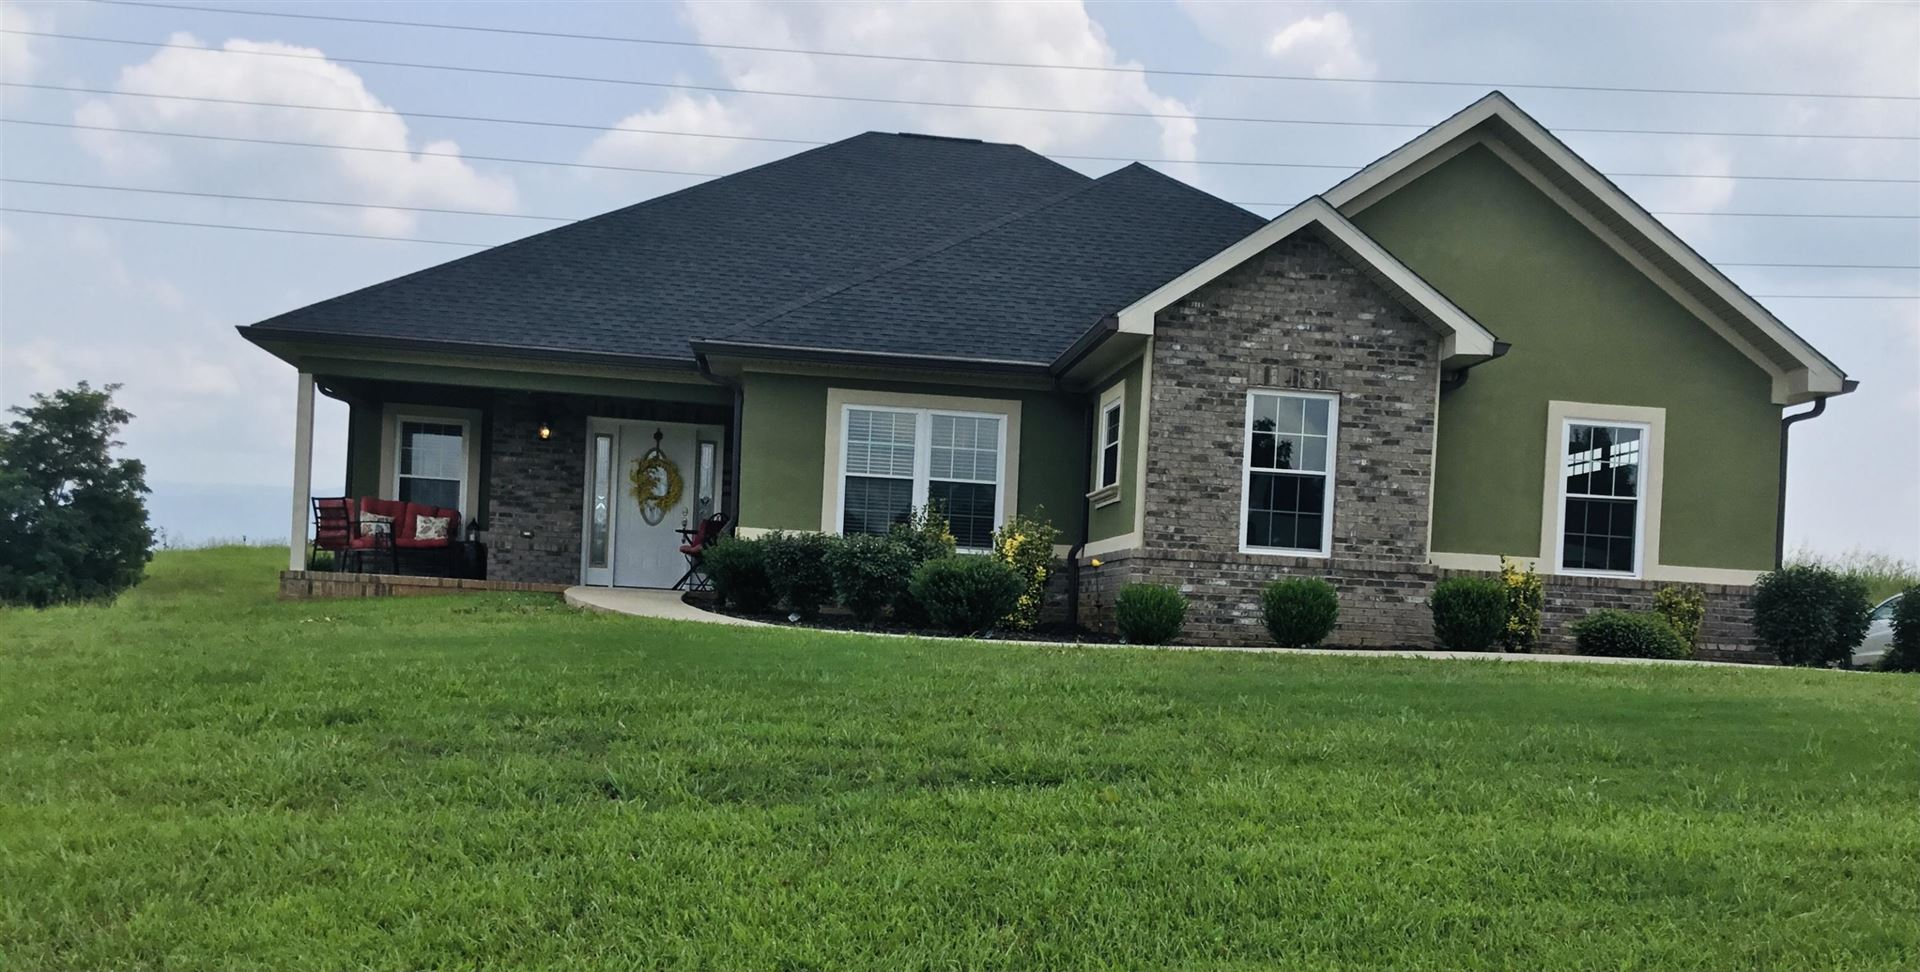 Photo of 127 Links View Drive, Greeneville, TN 37743 (MLS # 9926536)